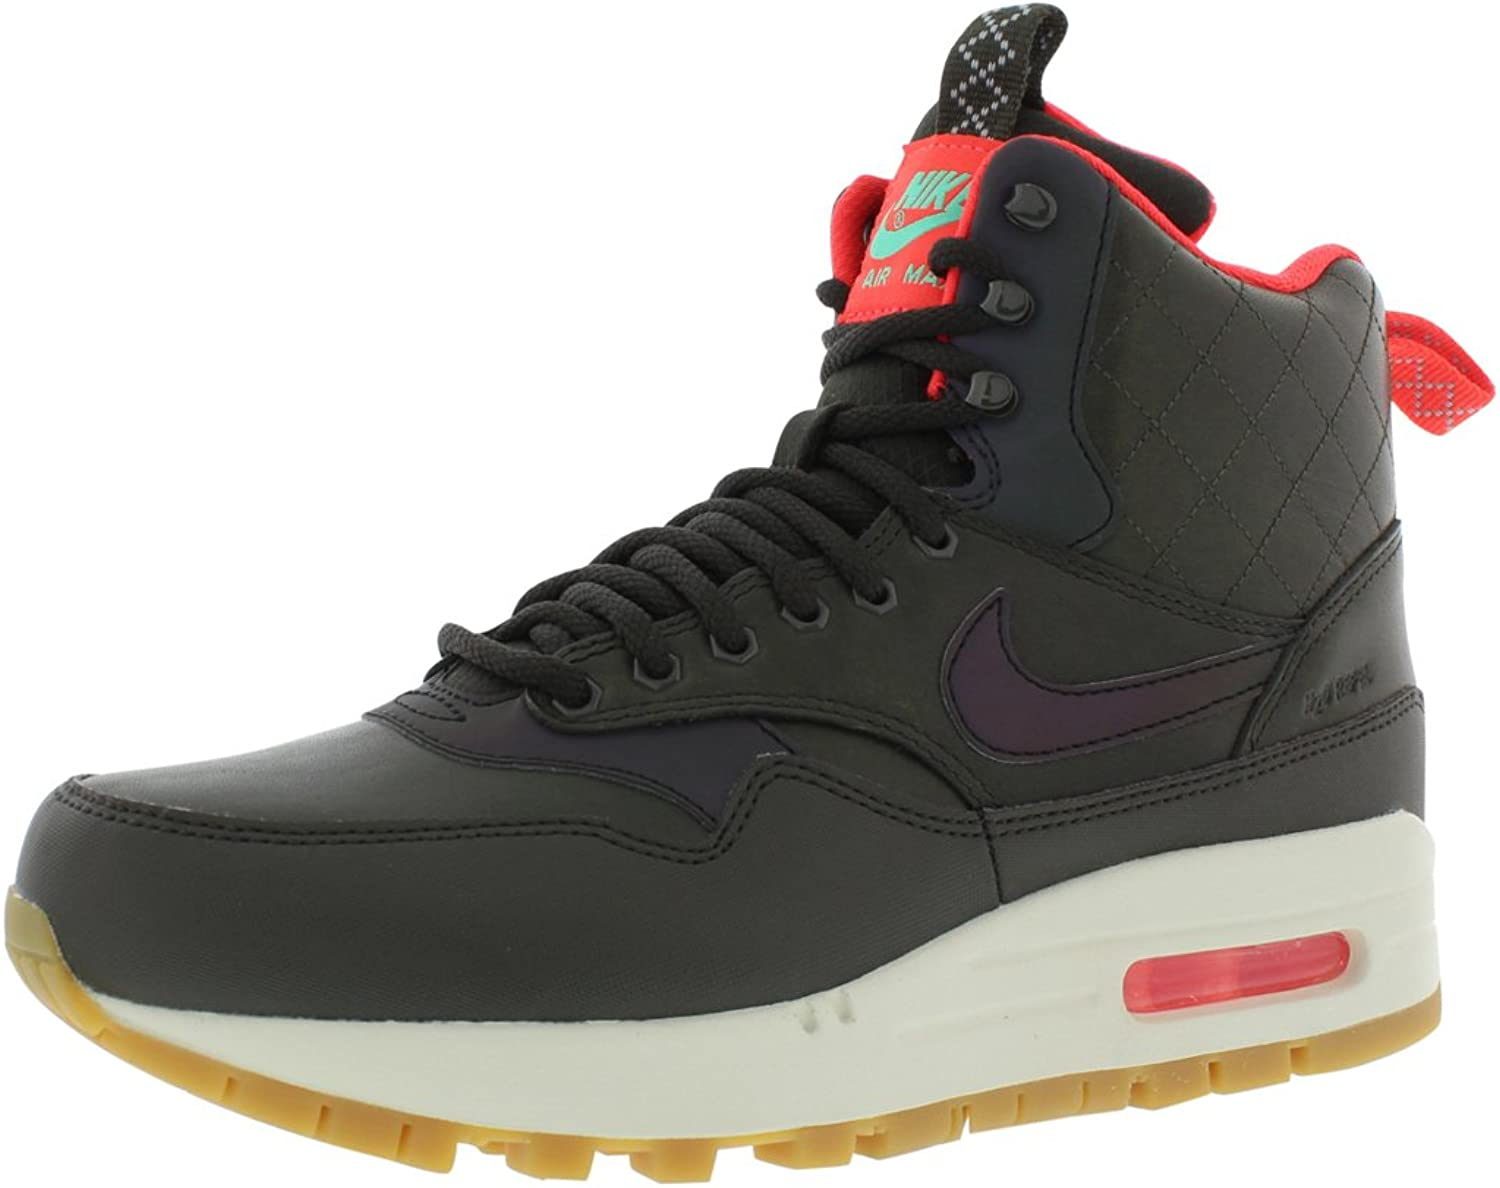 Nike WMNS Air Max 1 Mid Sneakerboot Reflect Women Lifestyle Sneakers New Sequoia - 6